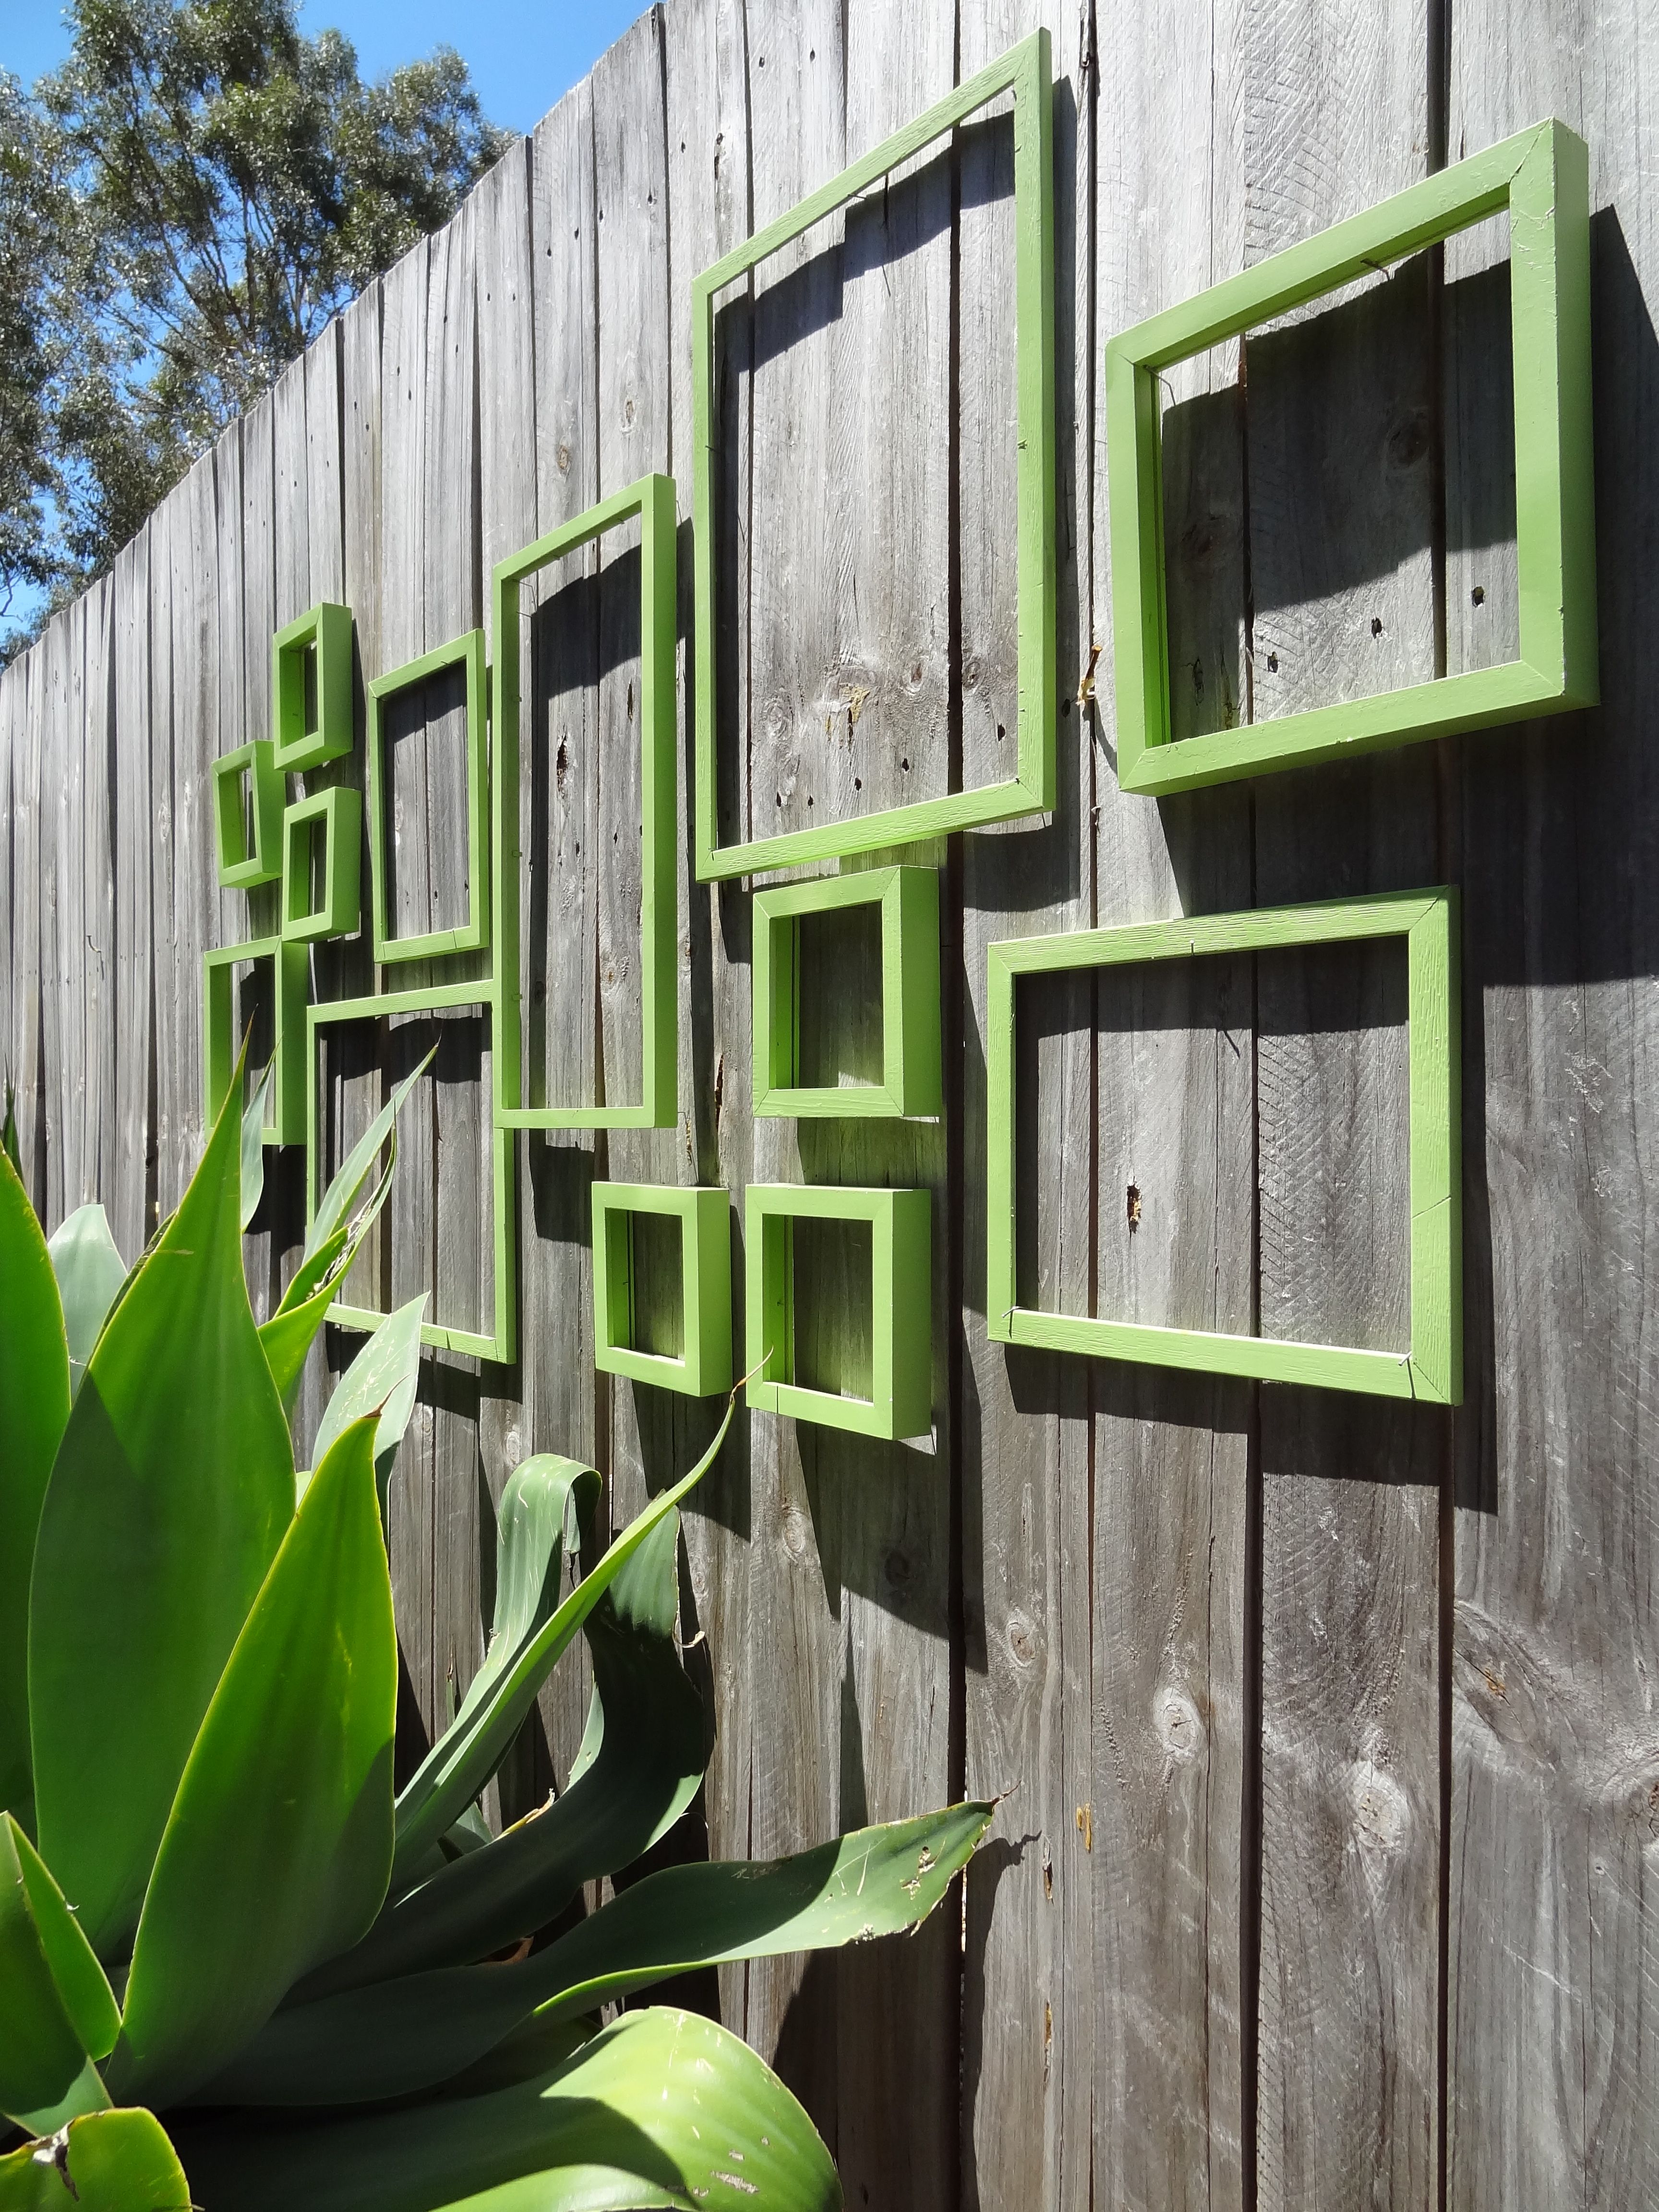 Outdoor Wall Art Frame Collage Diy Garden Fence Garden Wall Art Fence Art